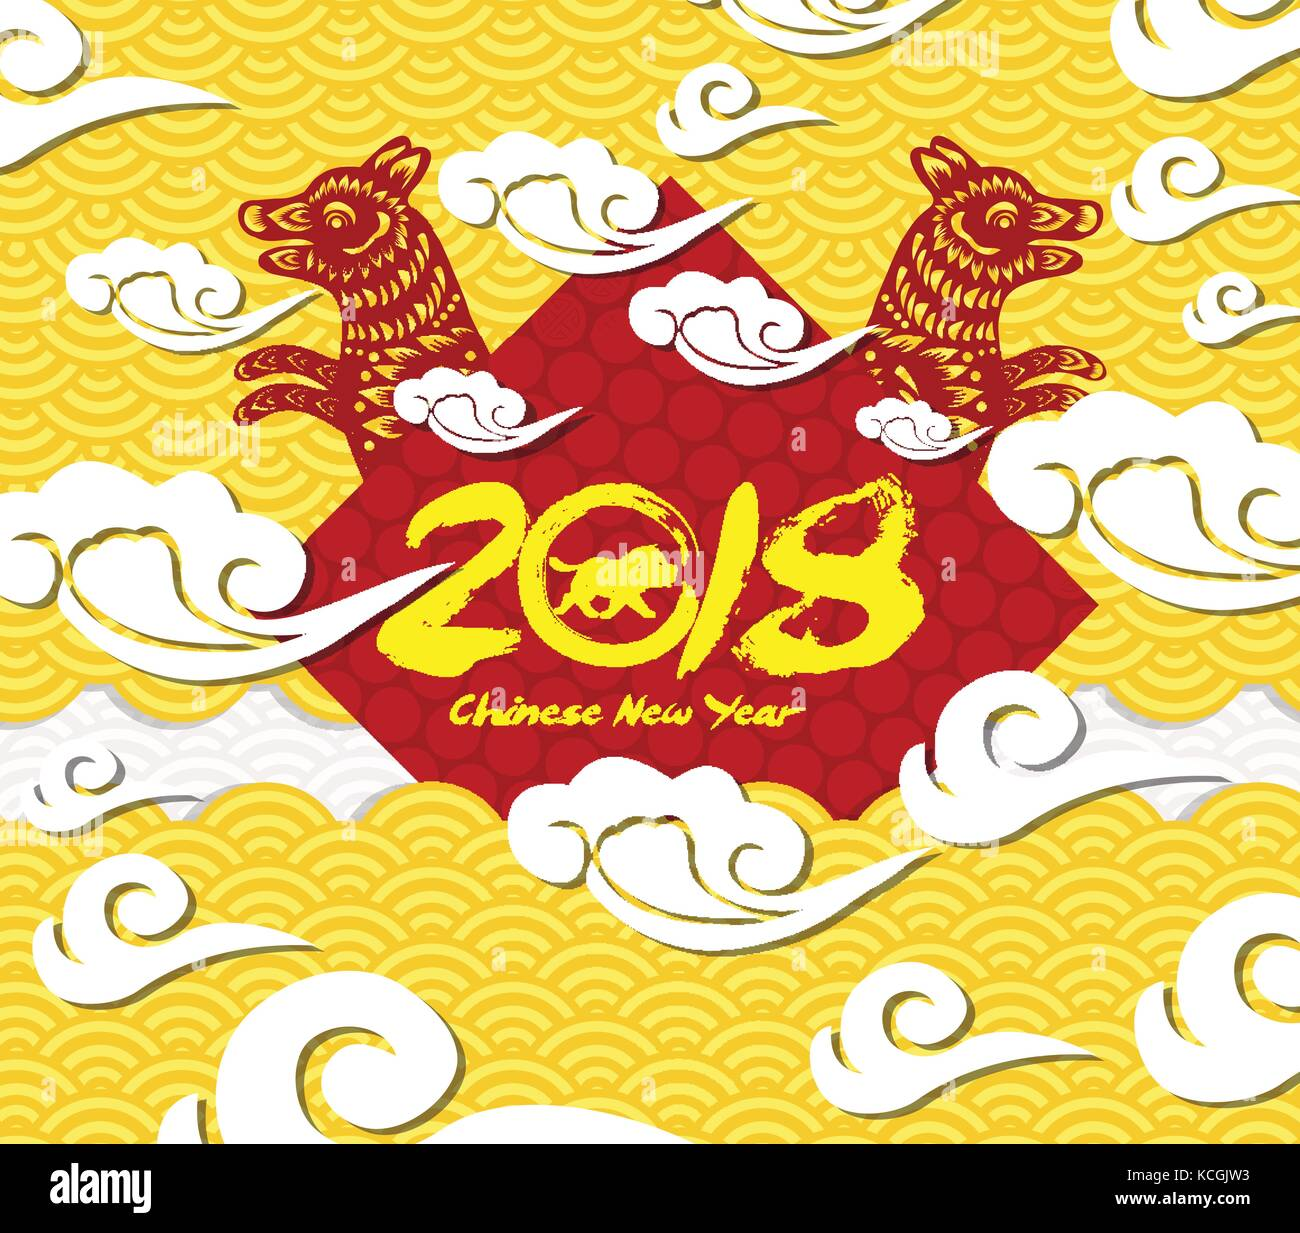 chinese new year 2018 greeting card chinese cloud background year of the dog